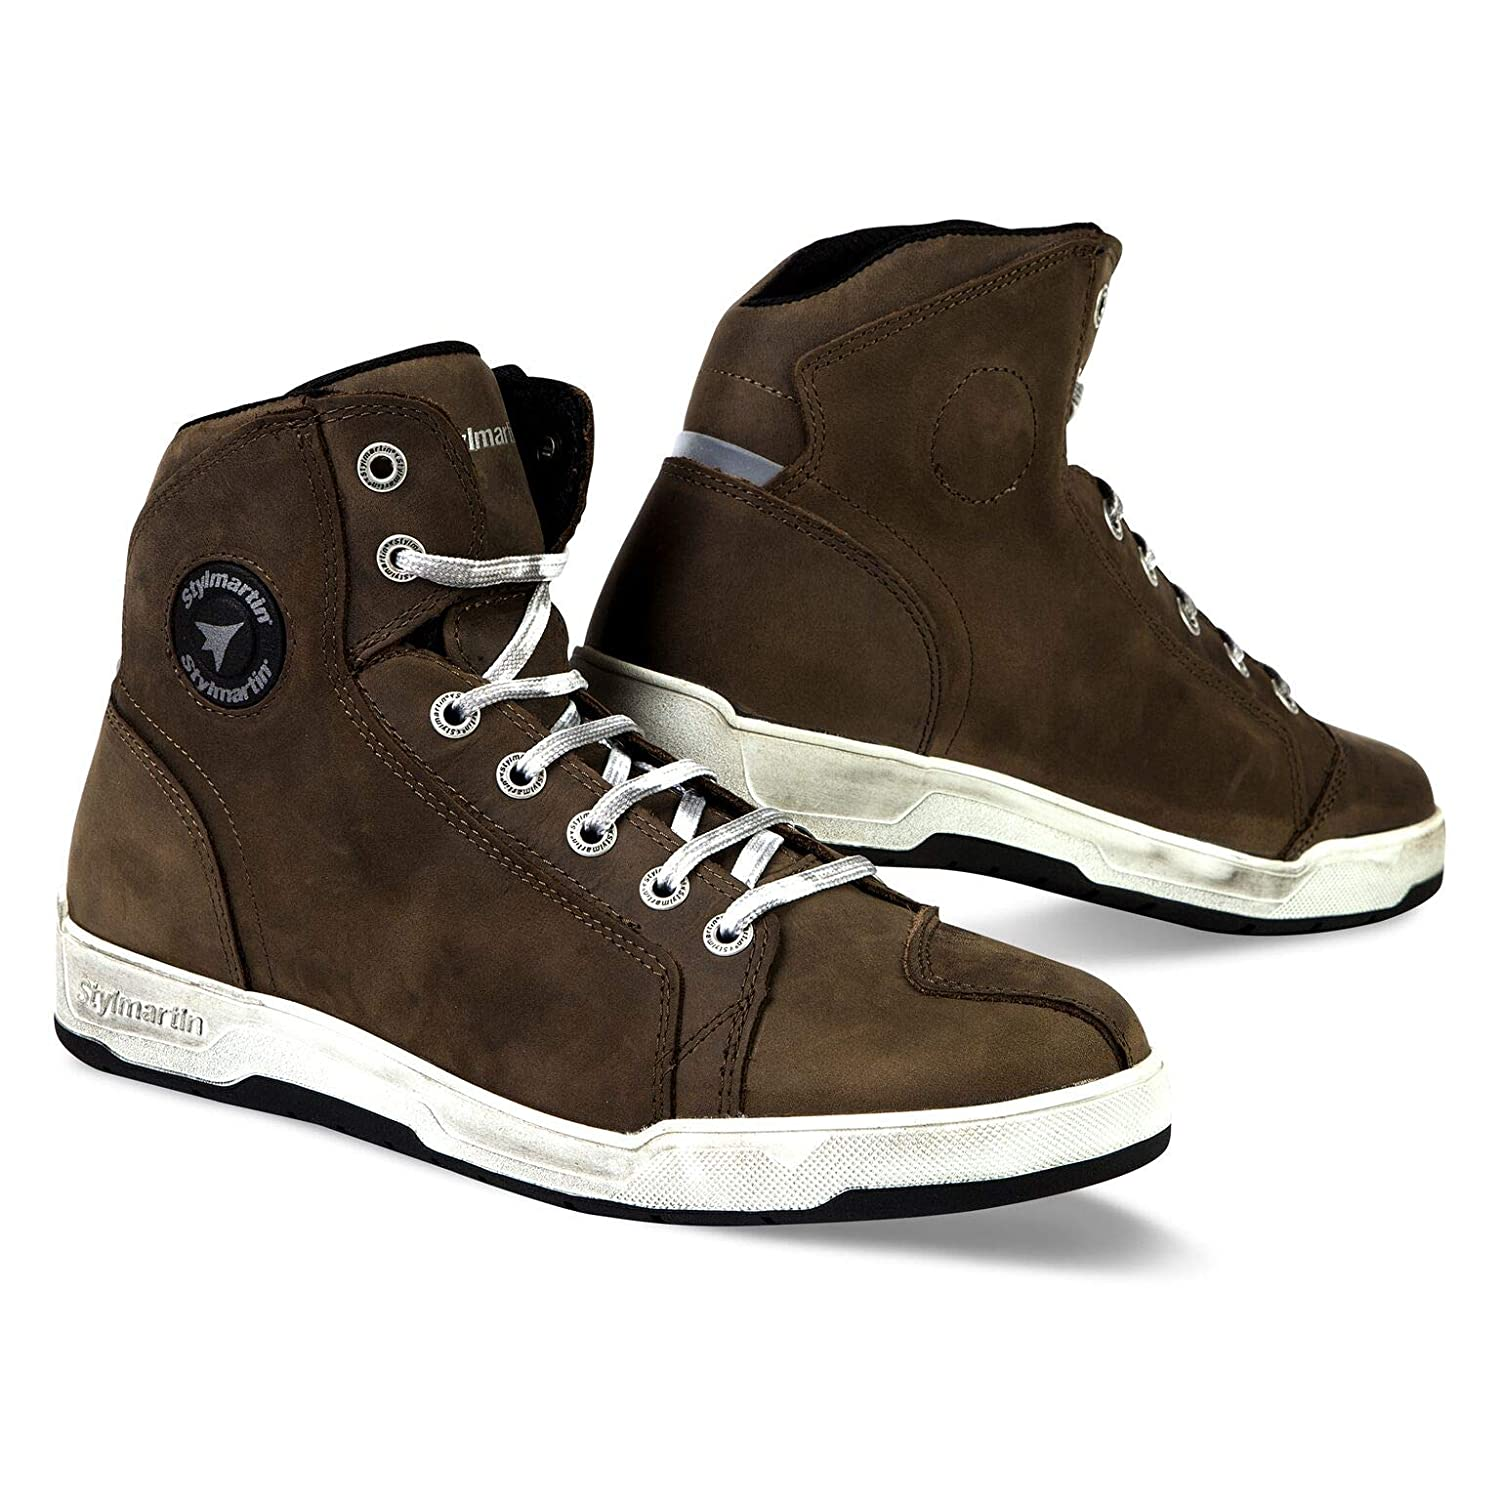 StylMartin Marshall Urban Sneakers In Size 44/Brown